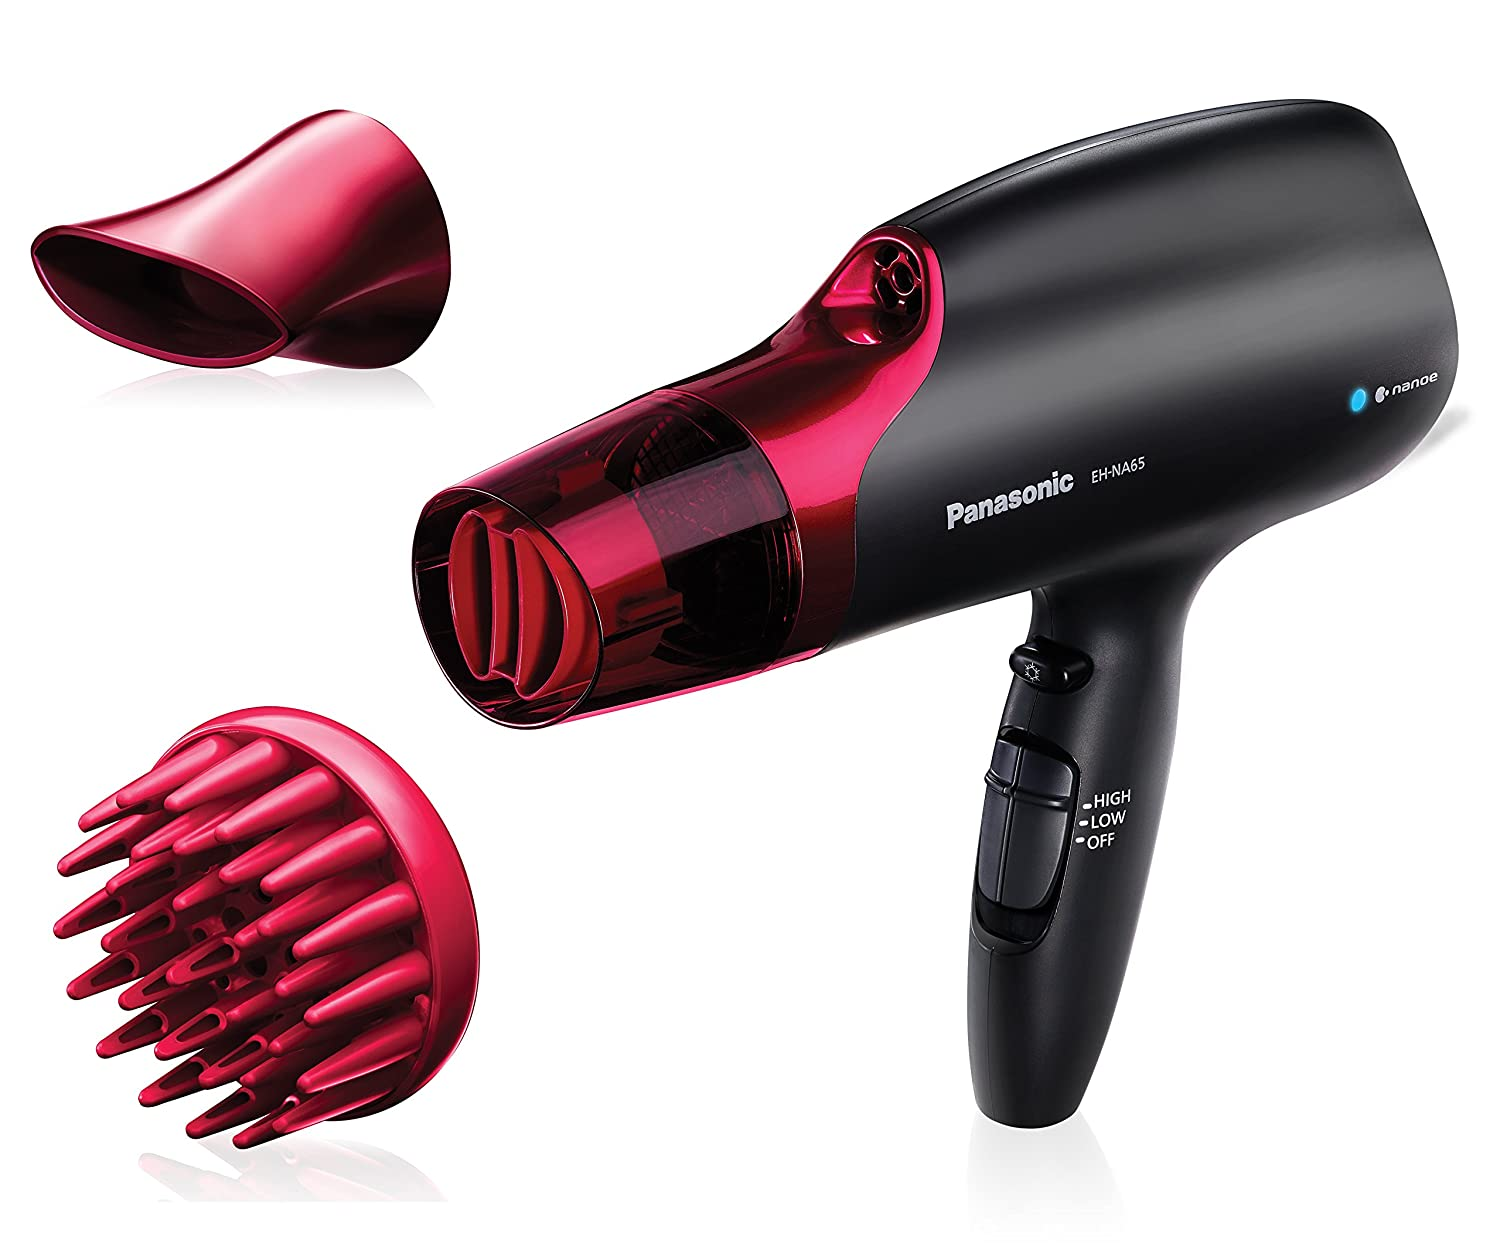 The Best Hair Dryer With Diffuser 2019: Our Top 5 Picks 14